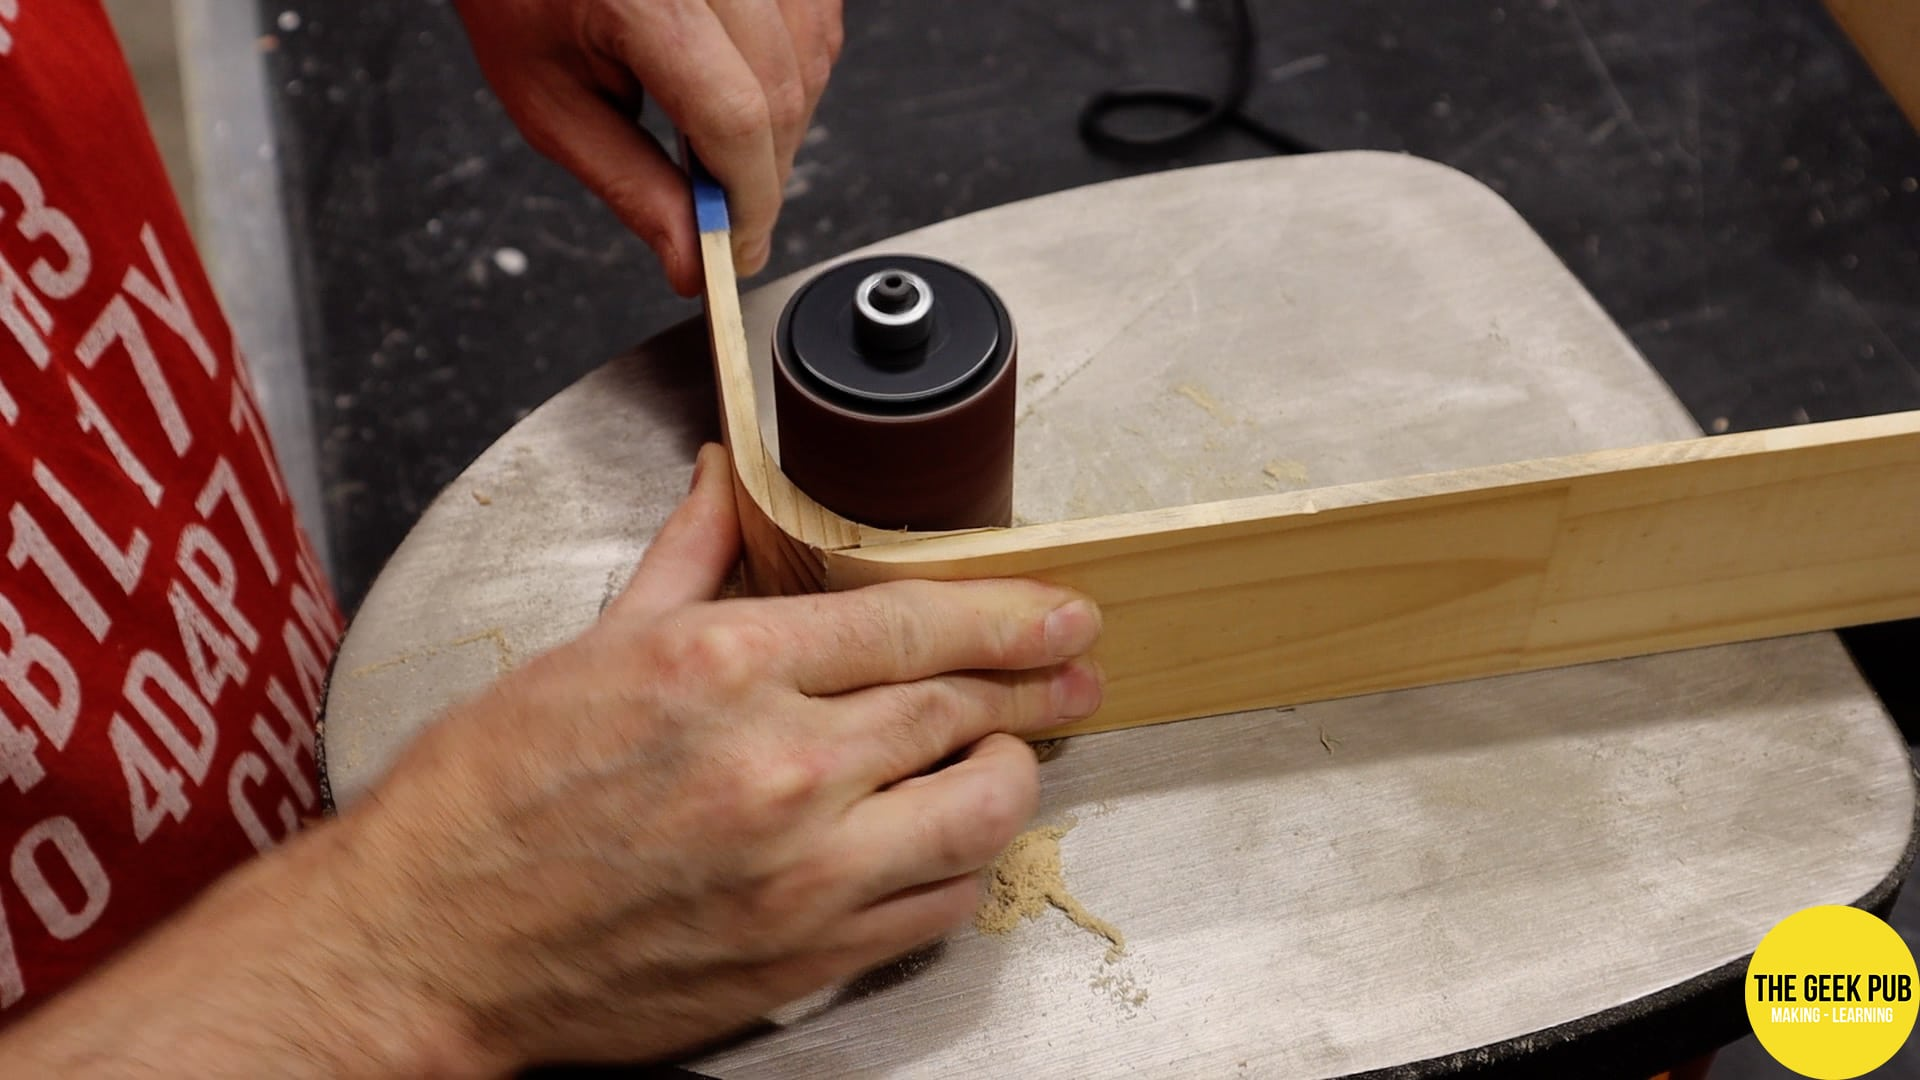 rounded corners on the spindle sander